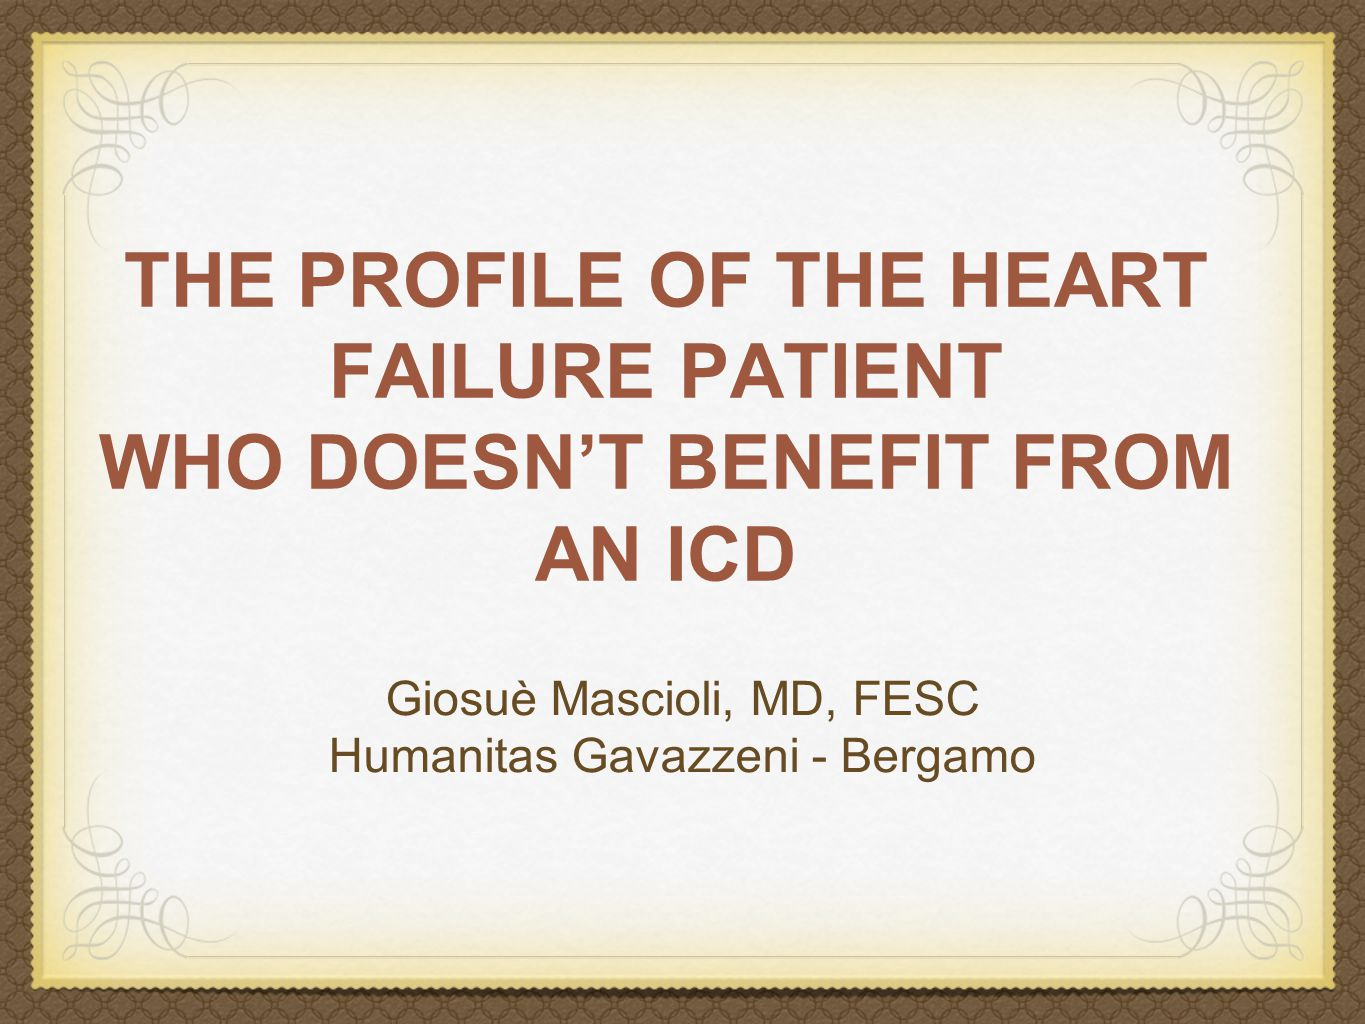 THE PROFILE OF THE HEART FAILURE PATIENT WHO DOESN'T BENEFIT FROM AN ICD Giosuè Mascioli, MD, FESC Humanitas Gavazzeni - Bergamo